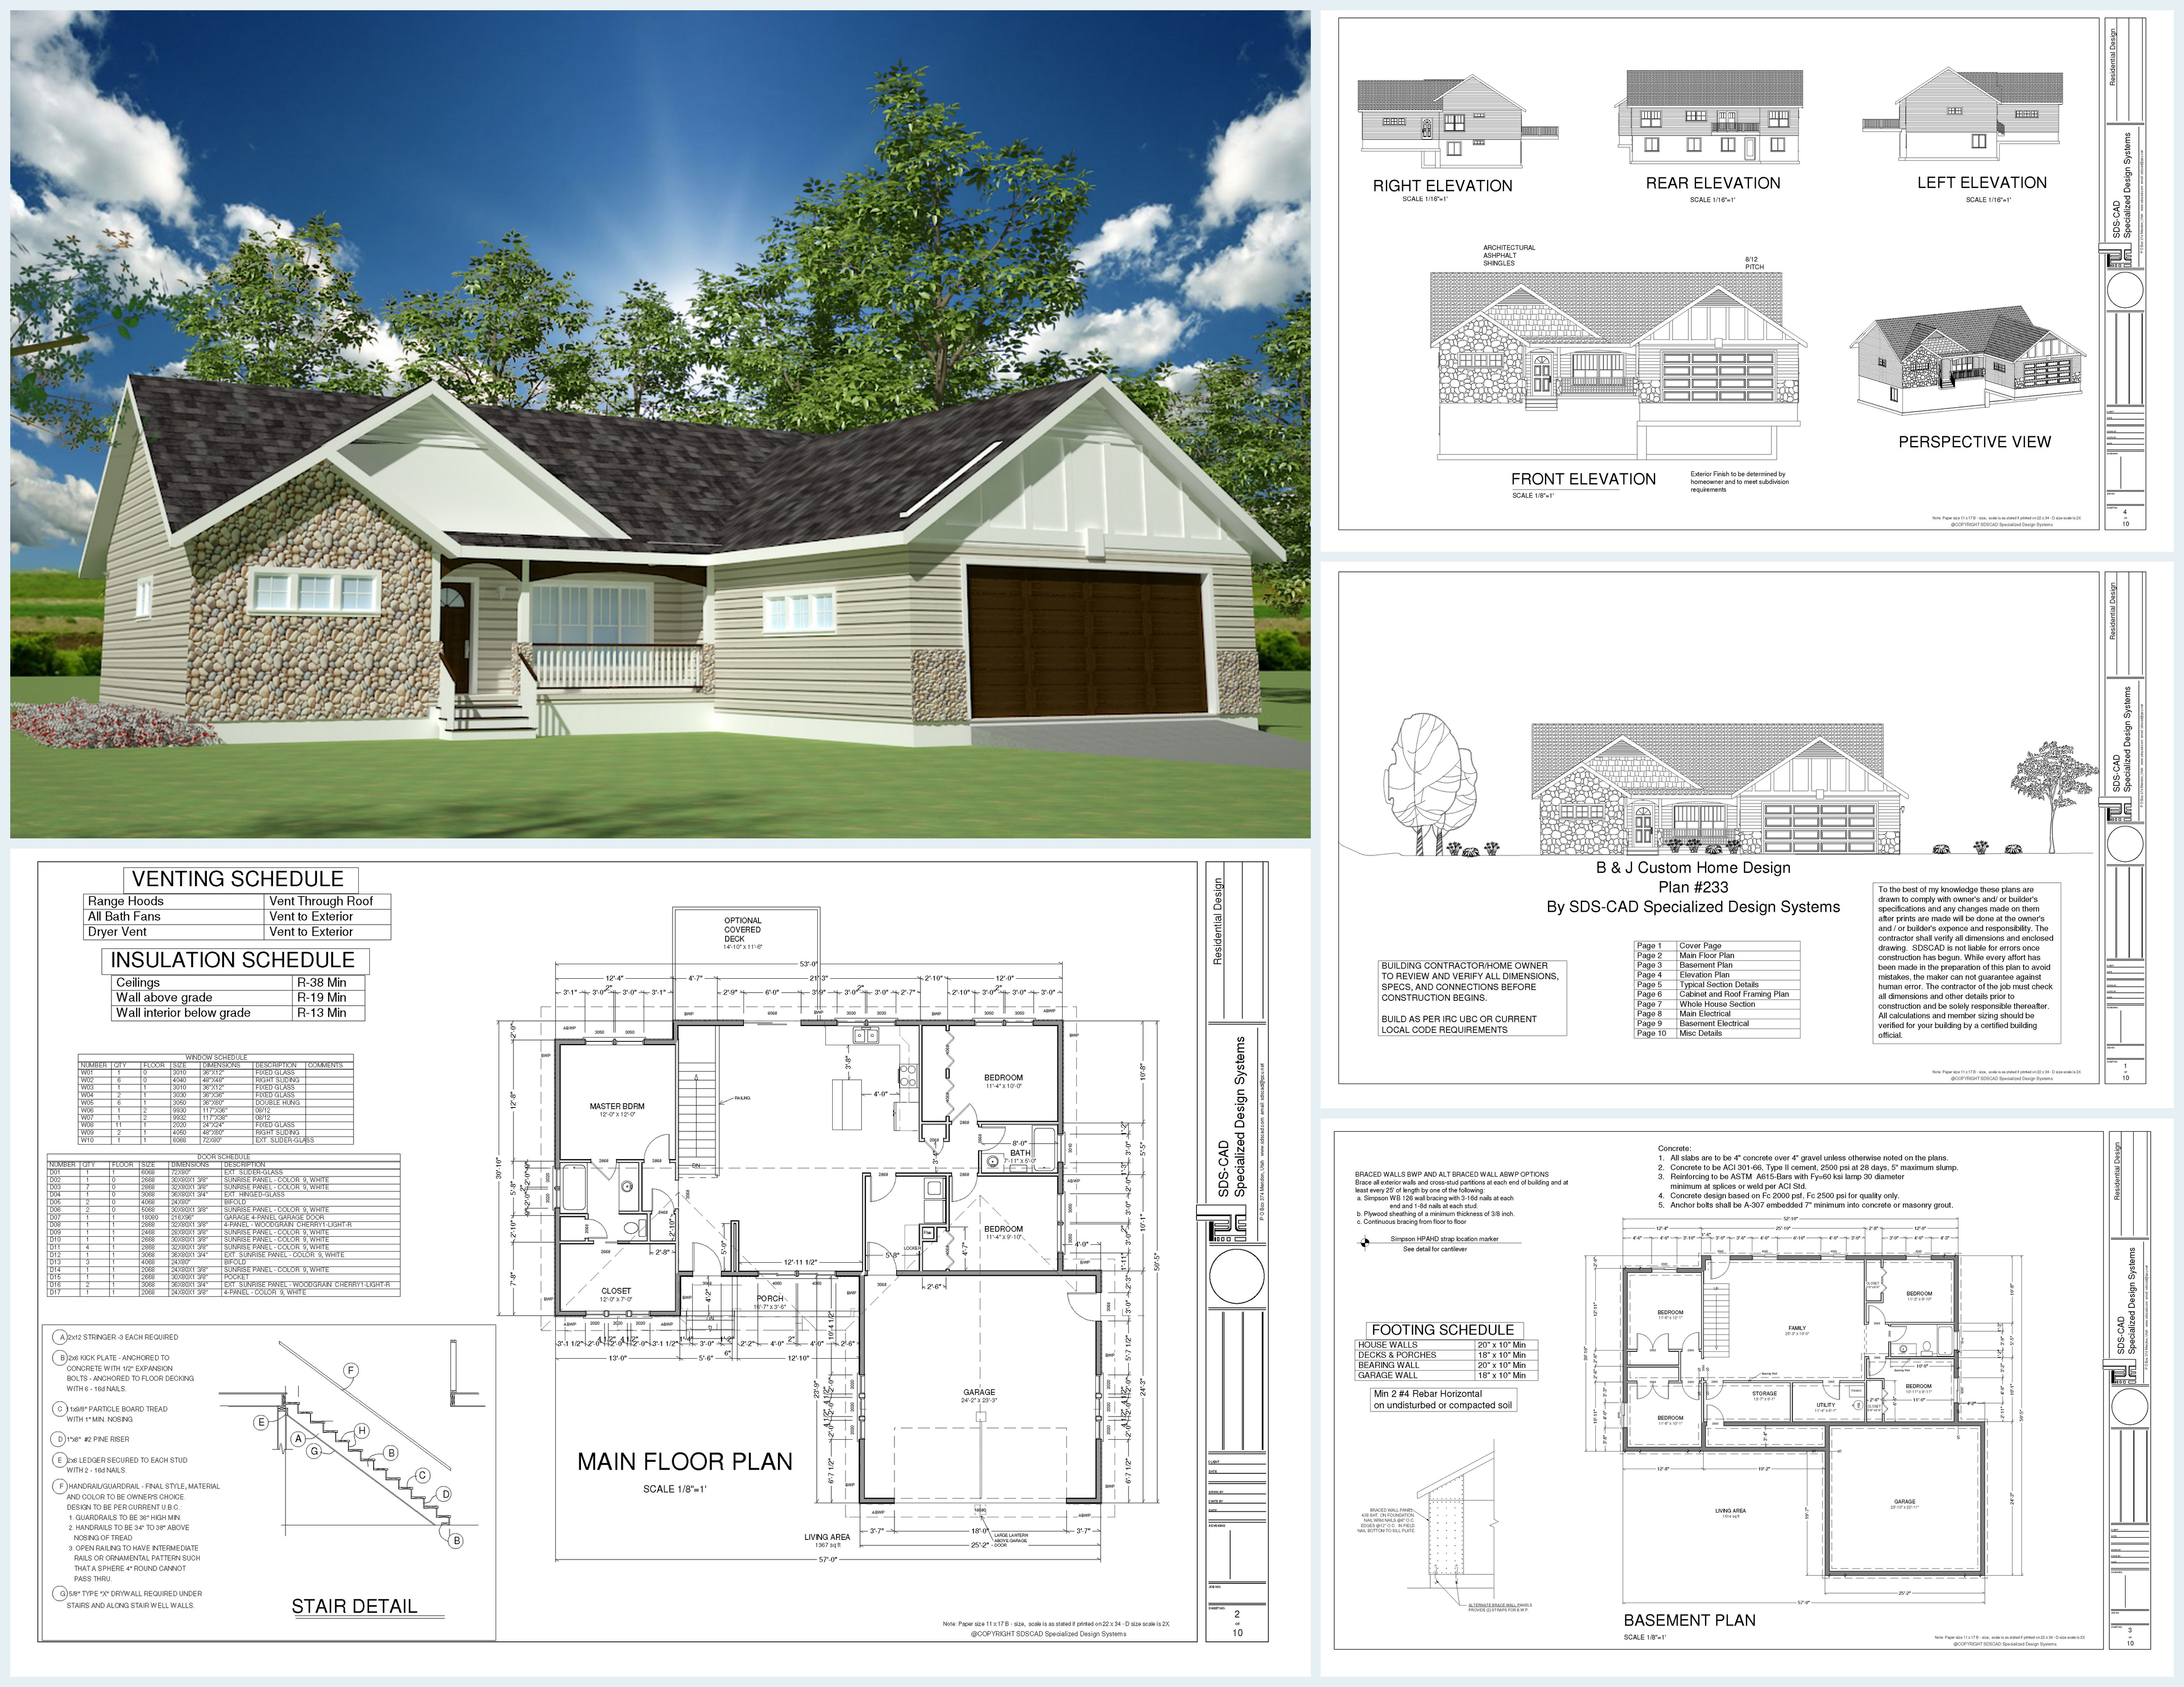 H233 1367 sq ft custom spec house plans in both pdf and dwg file sds plans Design home free